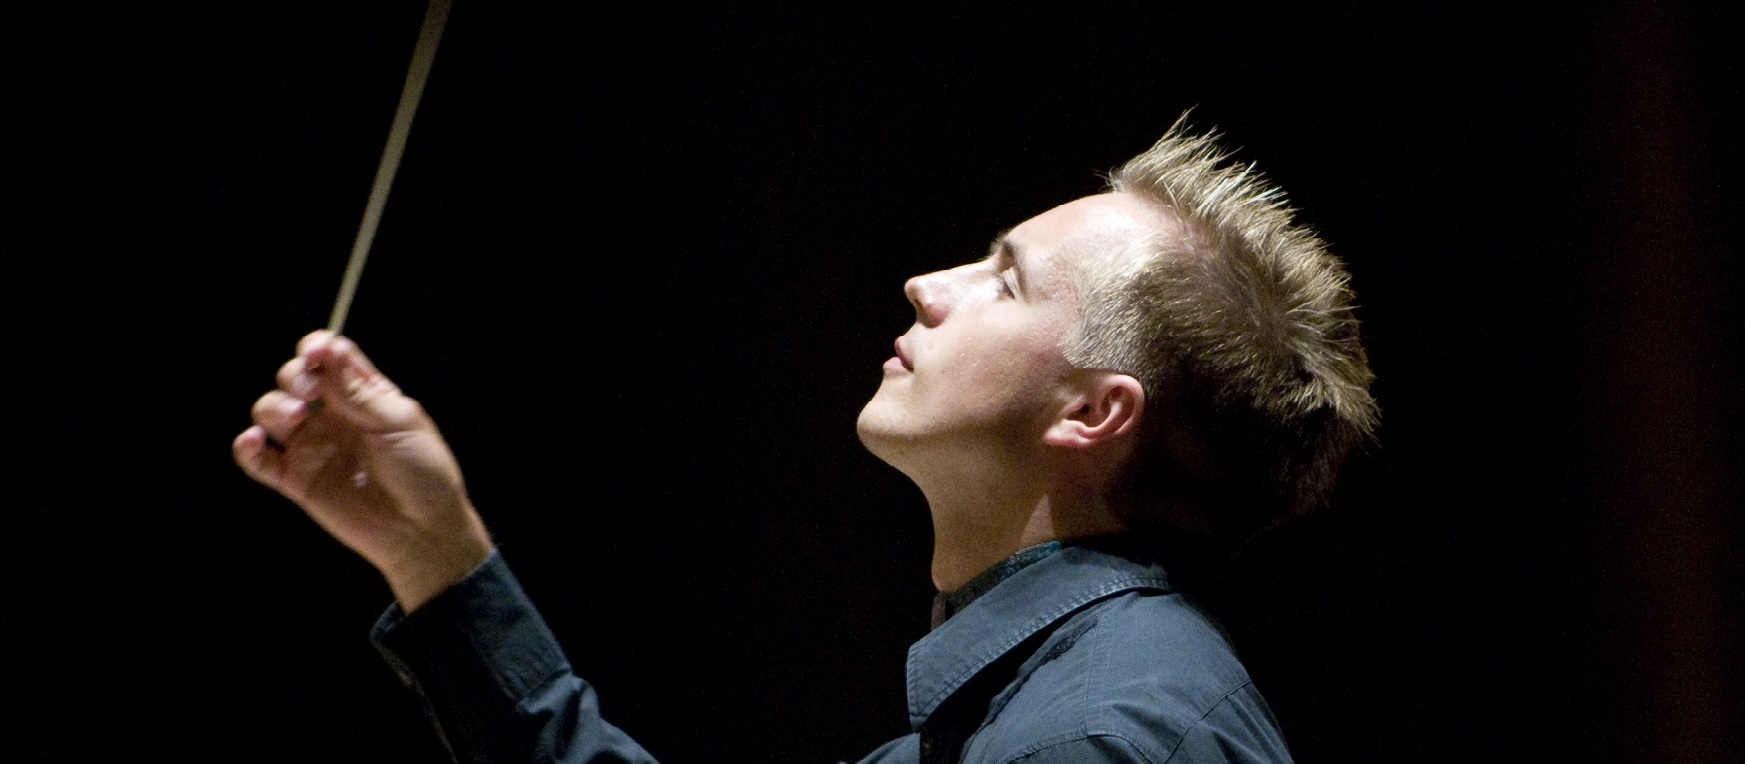 Chief Conductor Vasily Petrenko awarded Recording of The Year